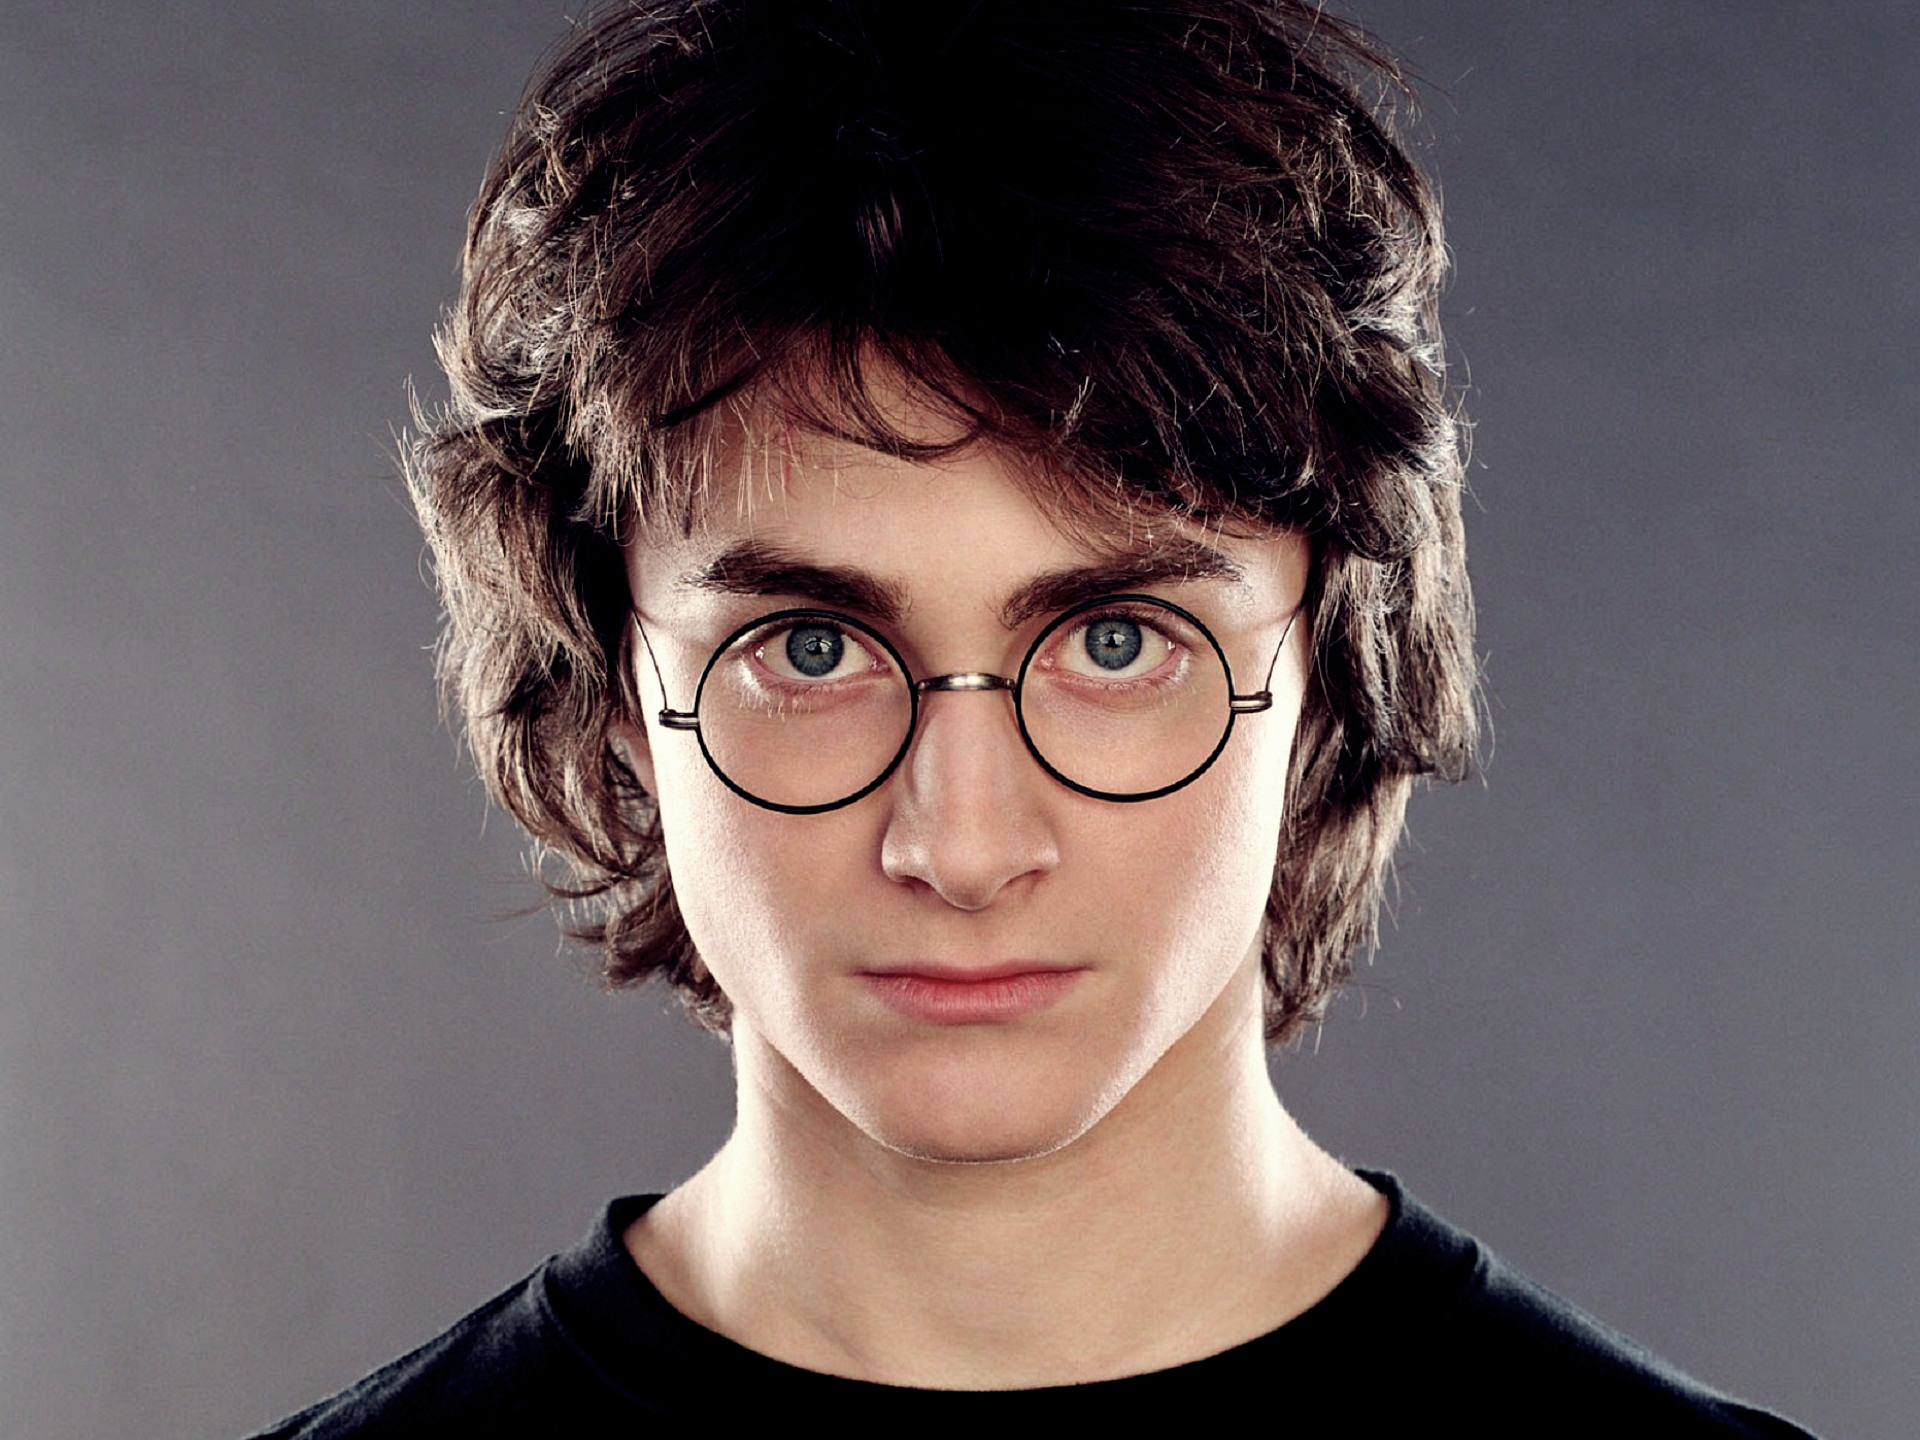 Rumors: Daniel Radcliffe to Star in Grand Theft Auto Movie